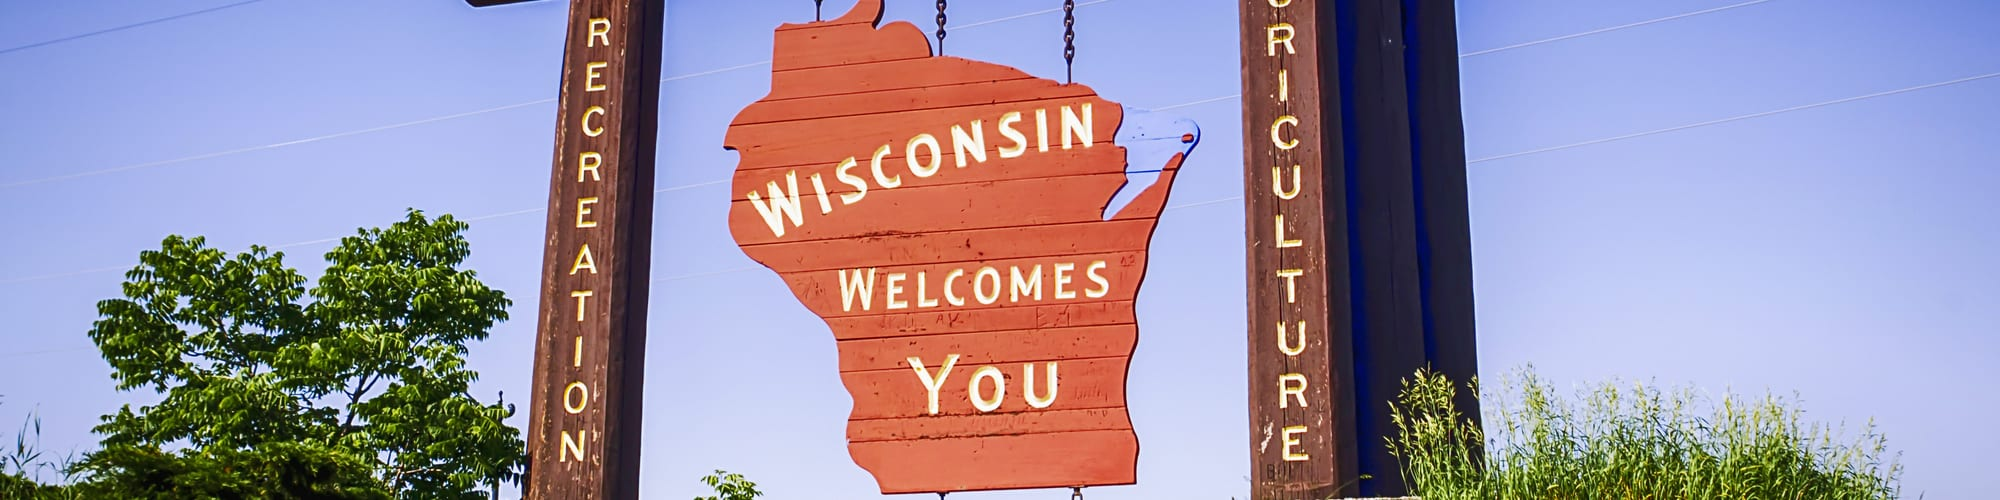 Wisconsin hanging sign